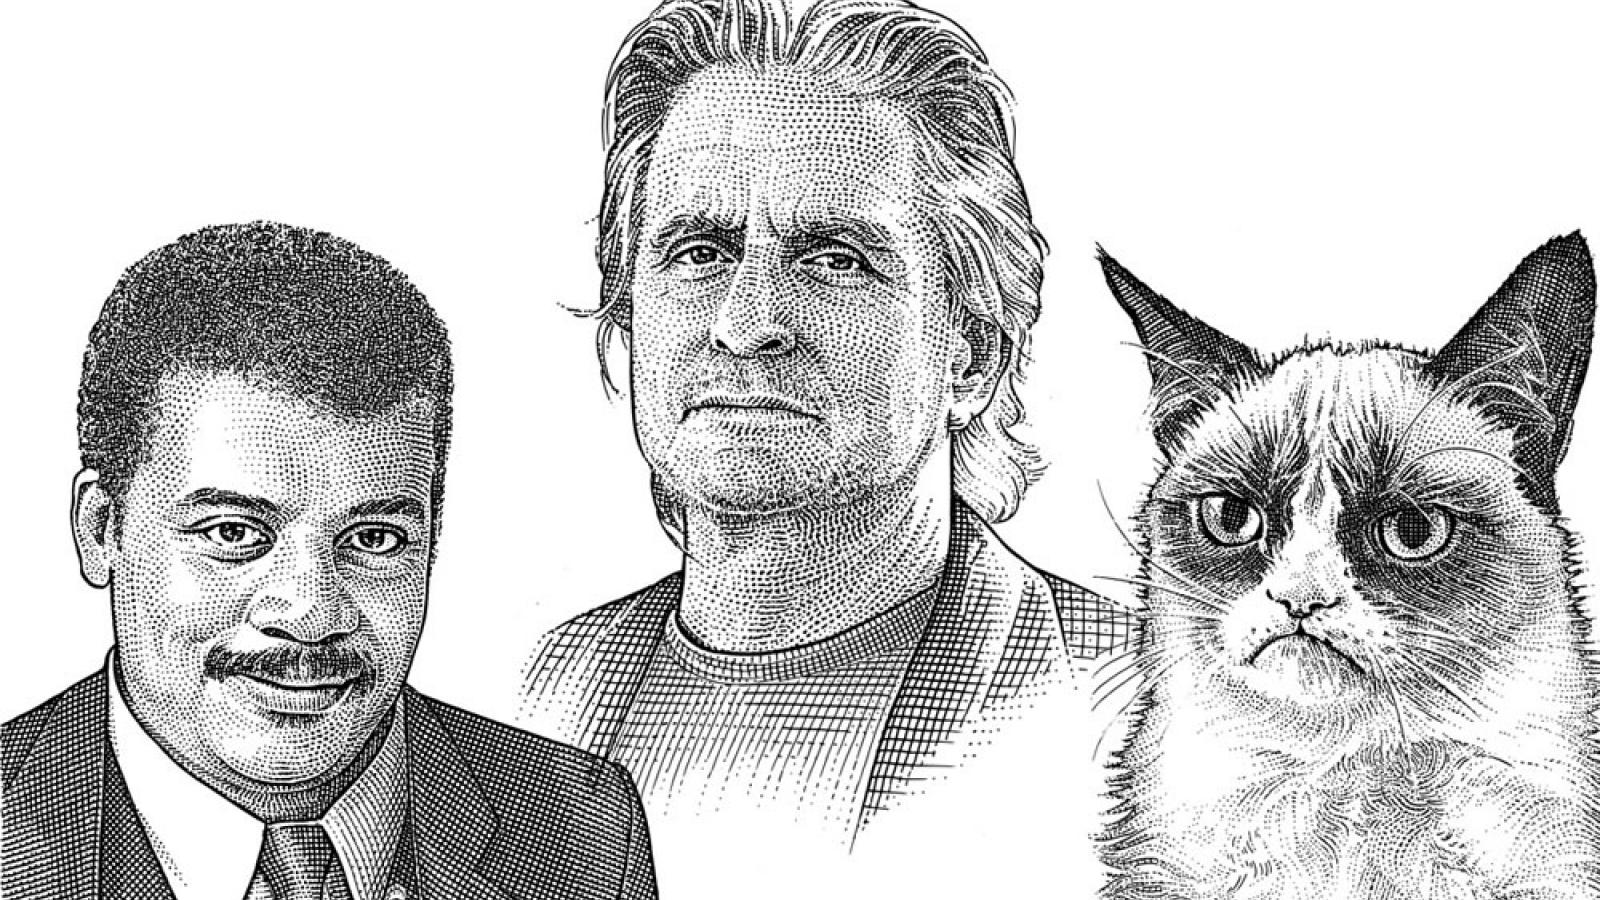 Splendid Celebrity Hedcuts by Noli Novak